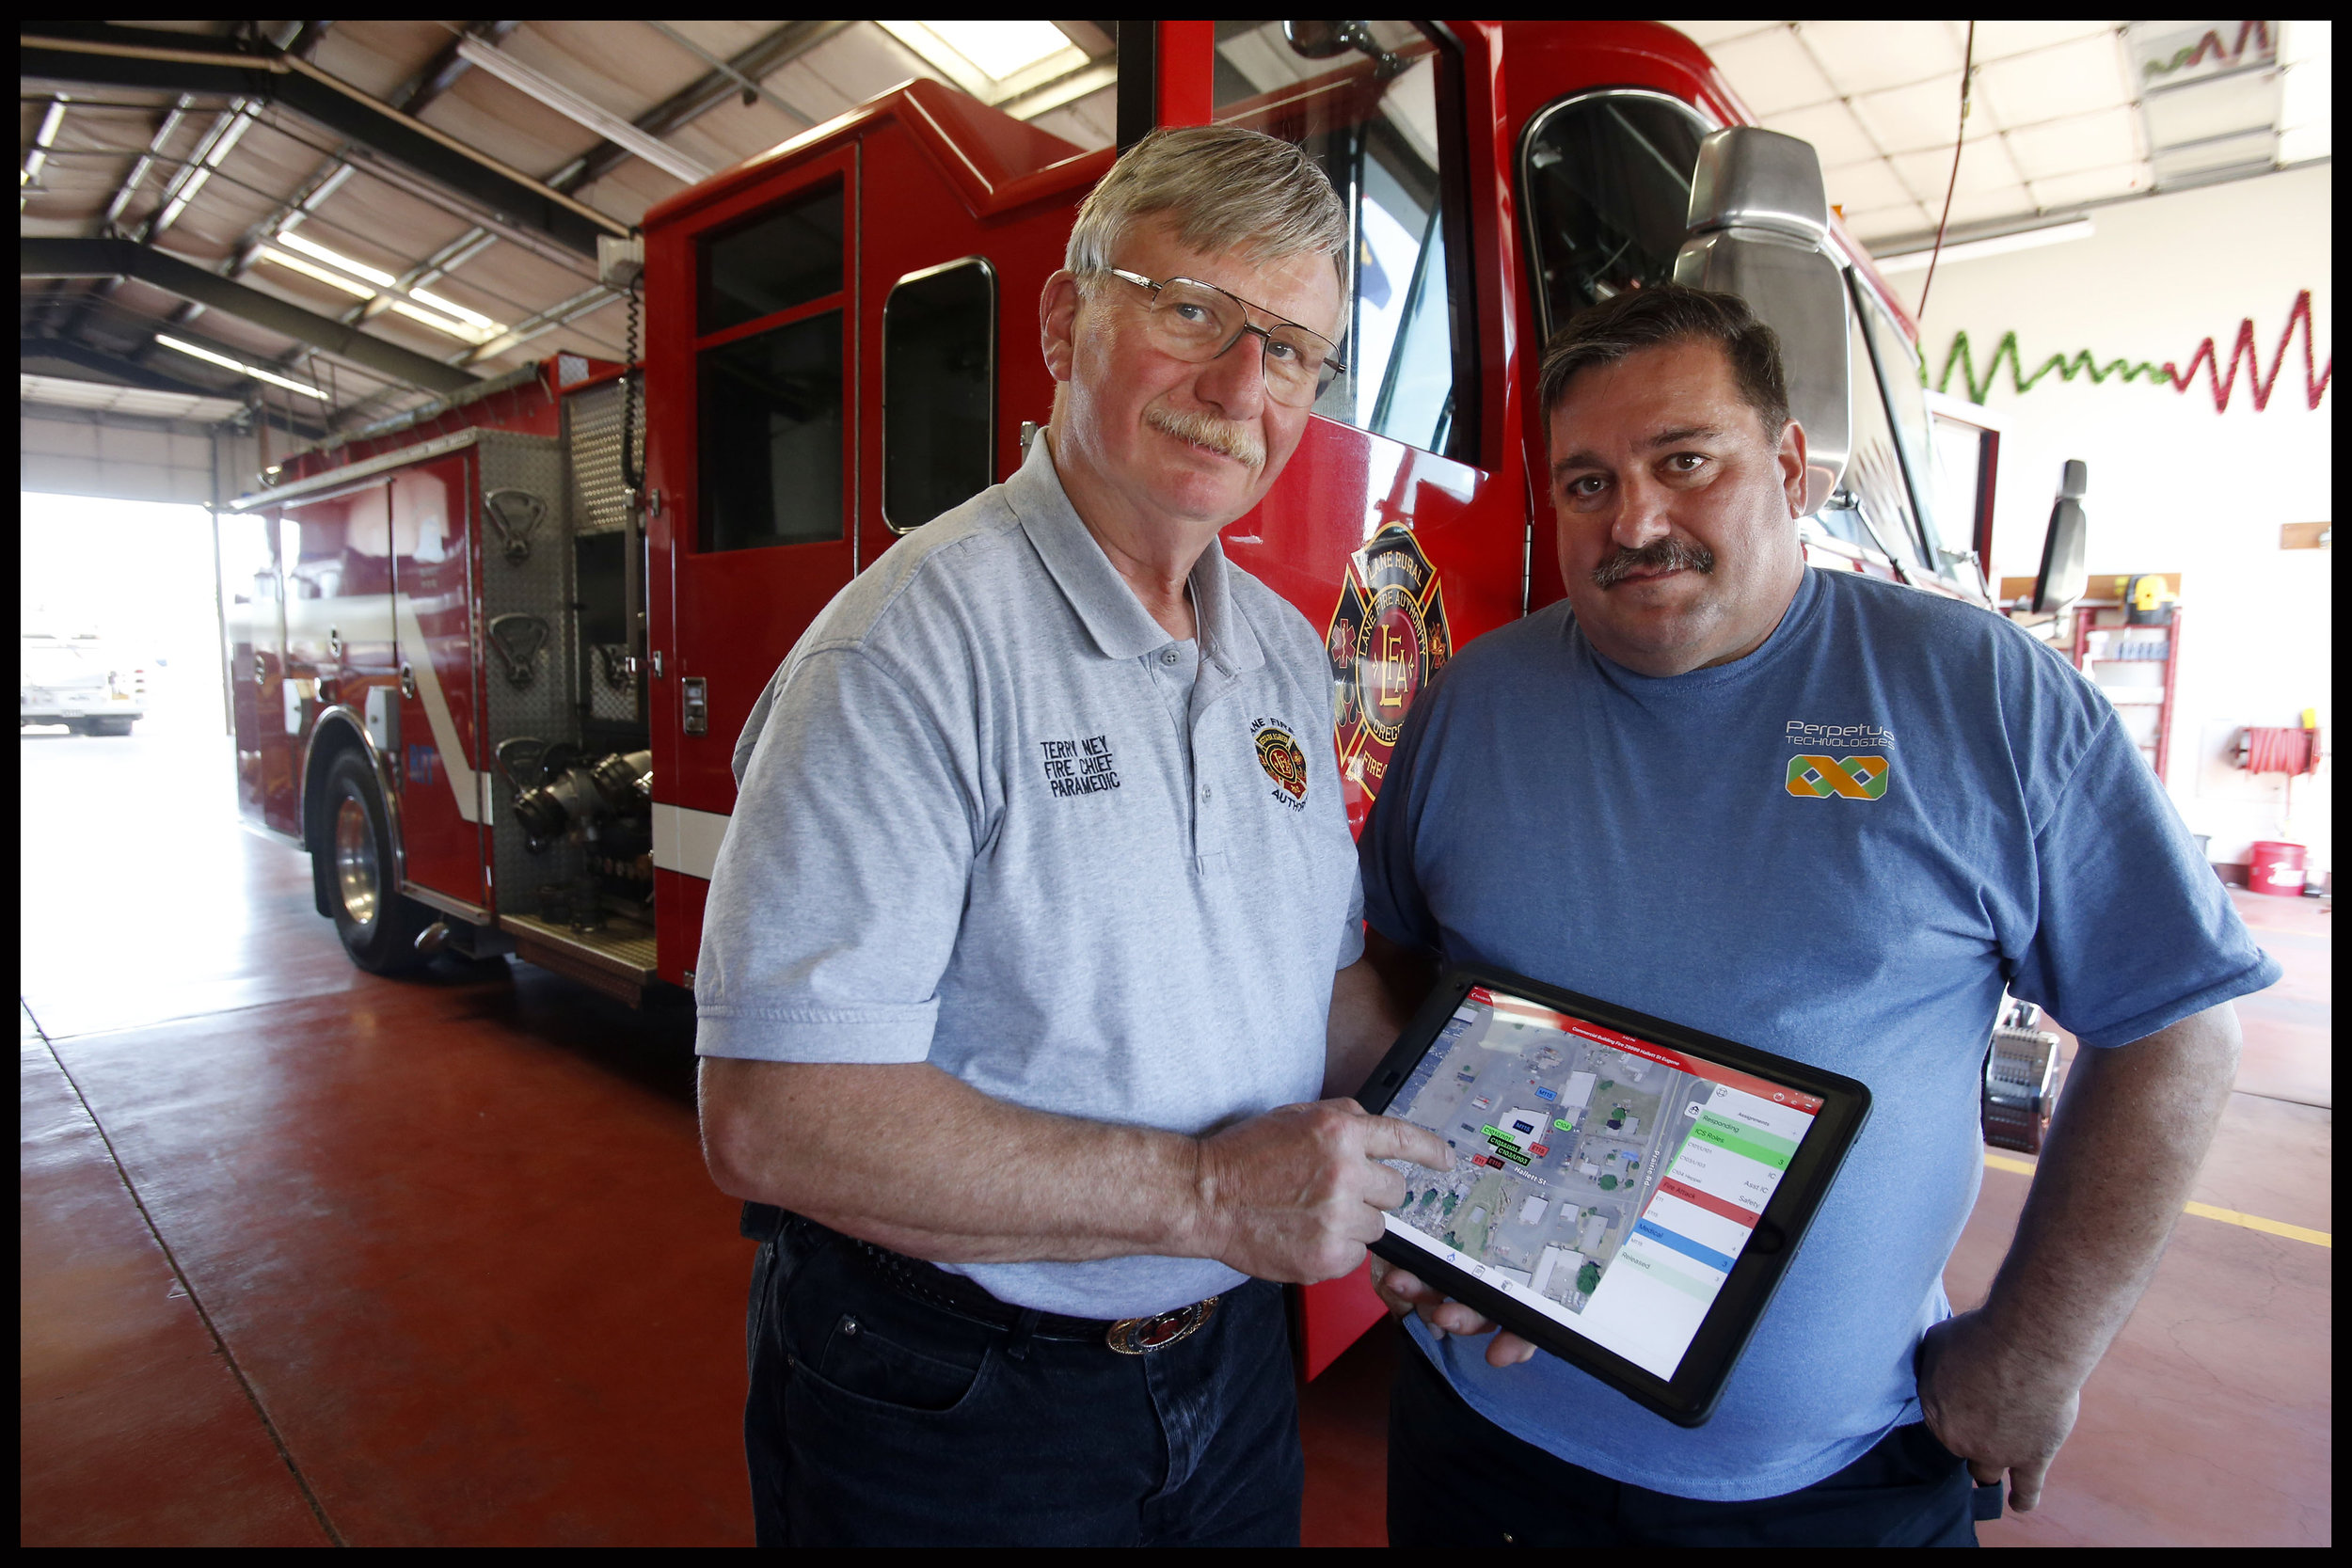 1/2 – Mike Speiser, right, a volunteer firefighter and software developer, worked with local fire chiefs, including Terry Ney at Lane County Fire, to develop software to improve emergency response to fires, wrecks, and other emergencies. This homegrown technology is being sold nationally from their offices in Eugene. (Andy Nelson/The Register-Guard)